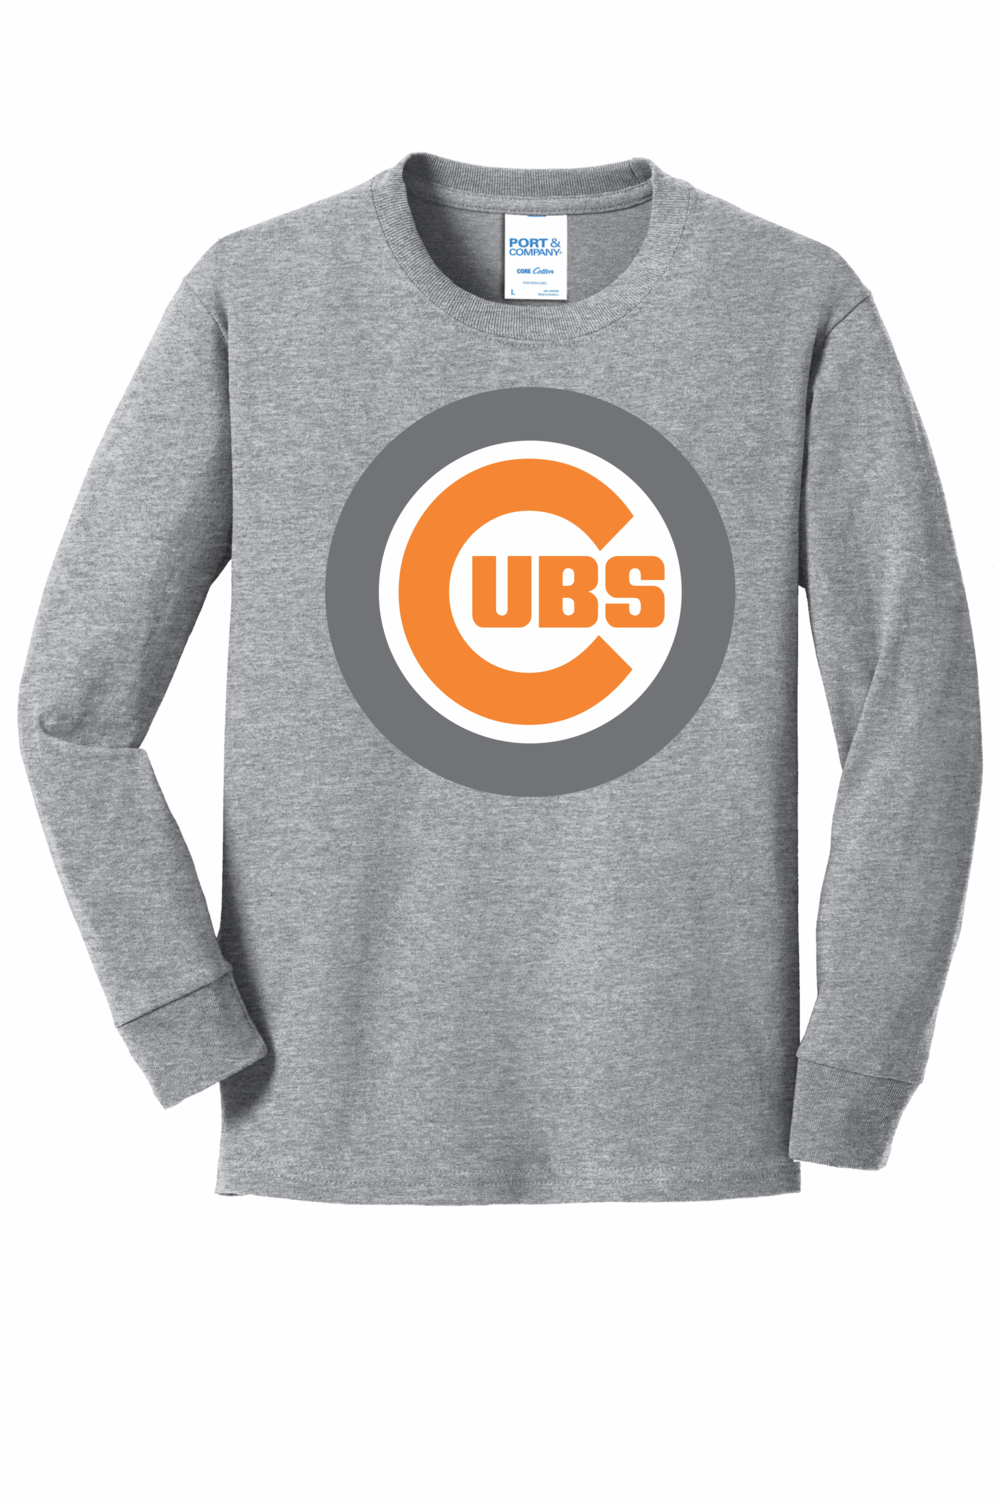 PC54YLS Port & Company® Youth Long Sleeve Core Cotton Tee